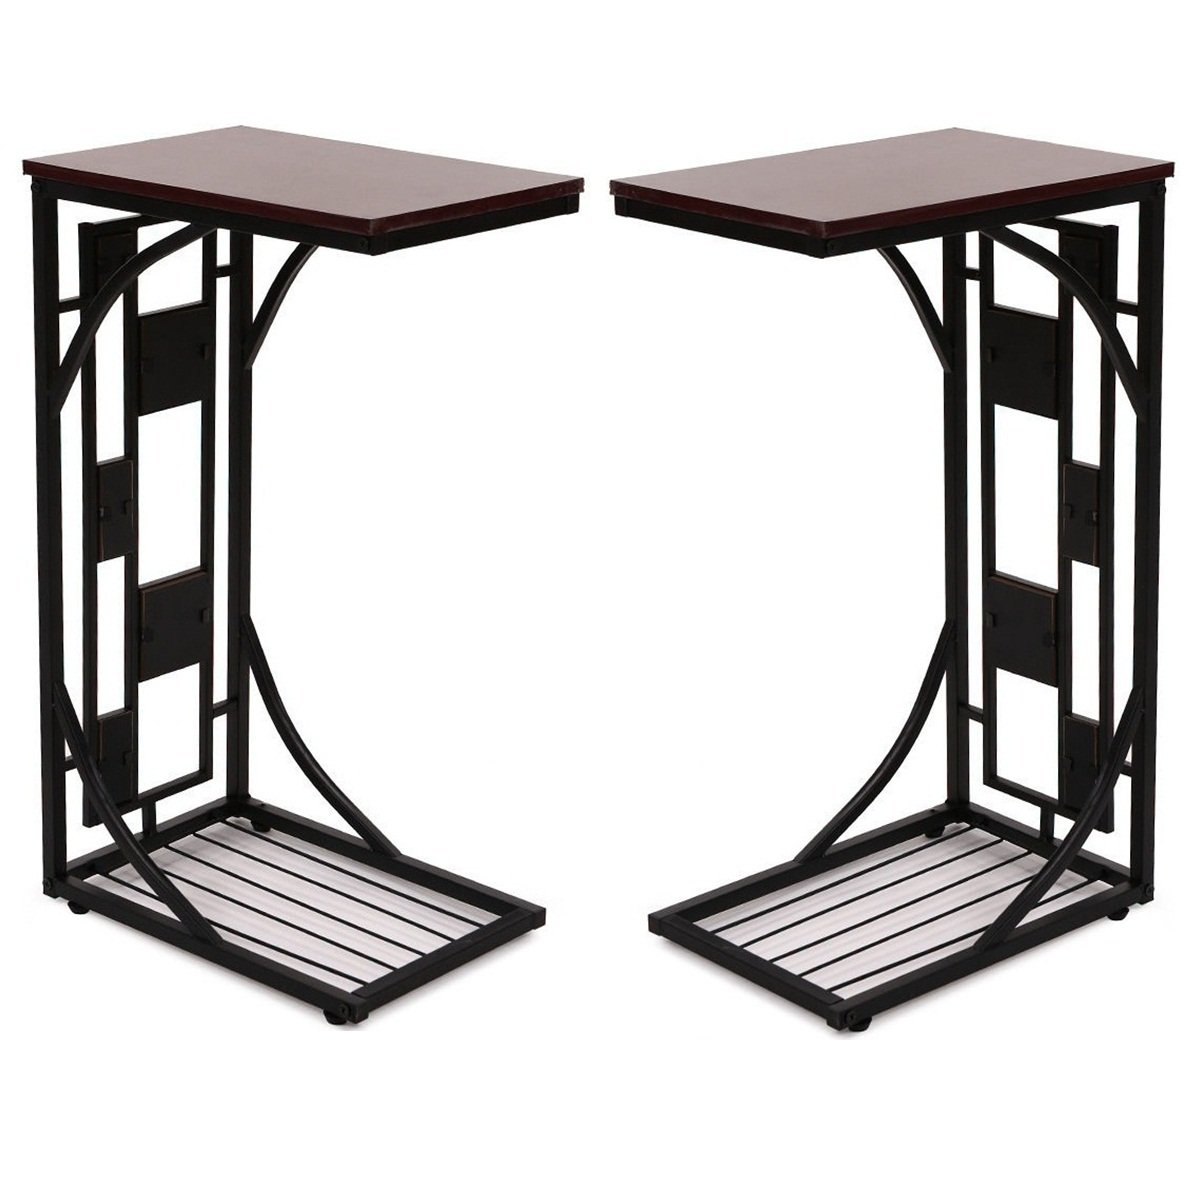 2 Pcs C shaped Side Sofa Table Coffee Tray Stand